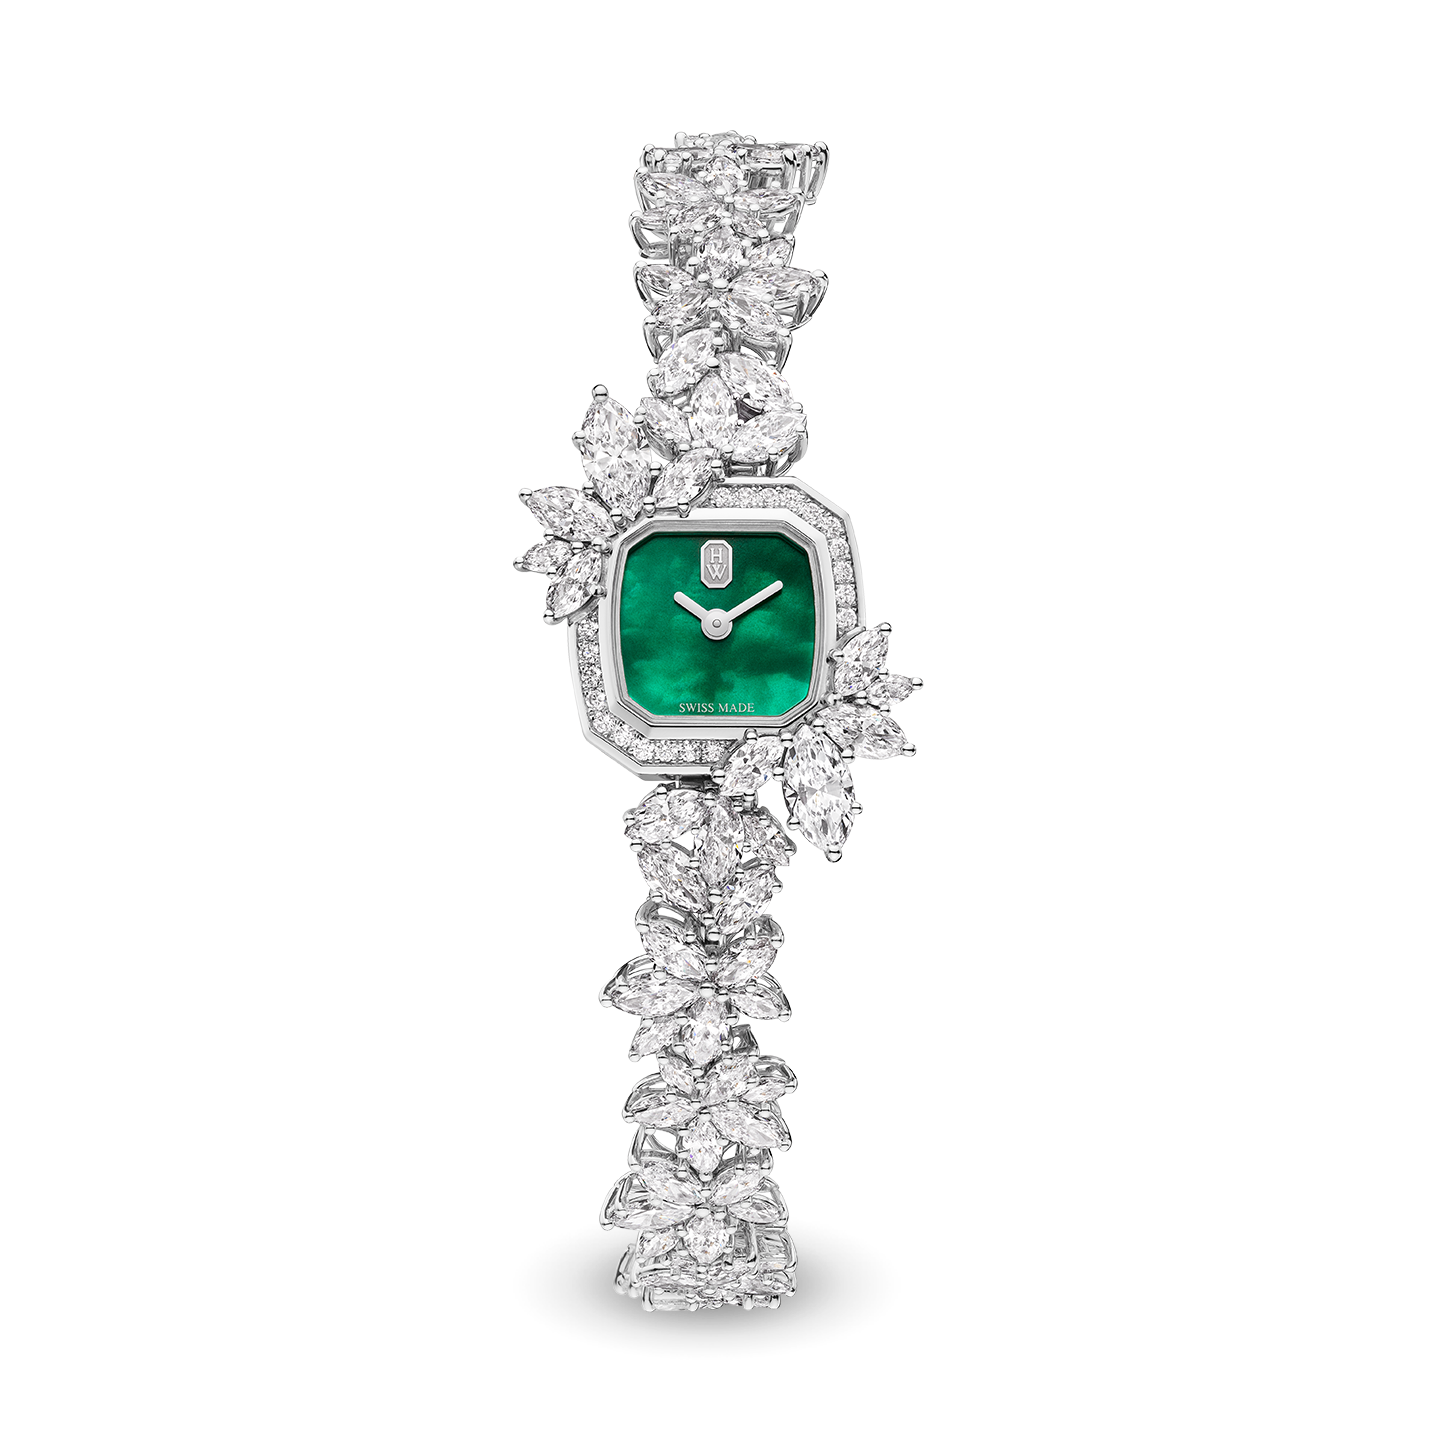 Precious Emerald by Harry Winston, product image 1